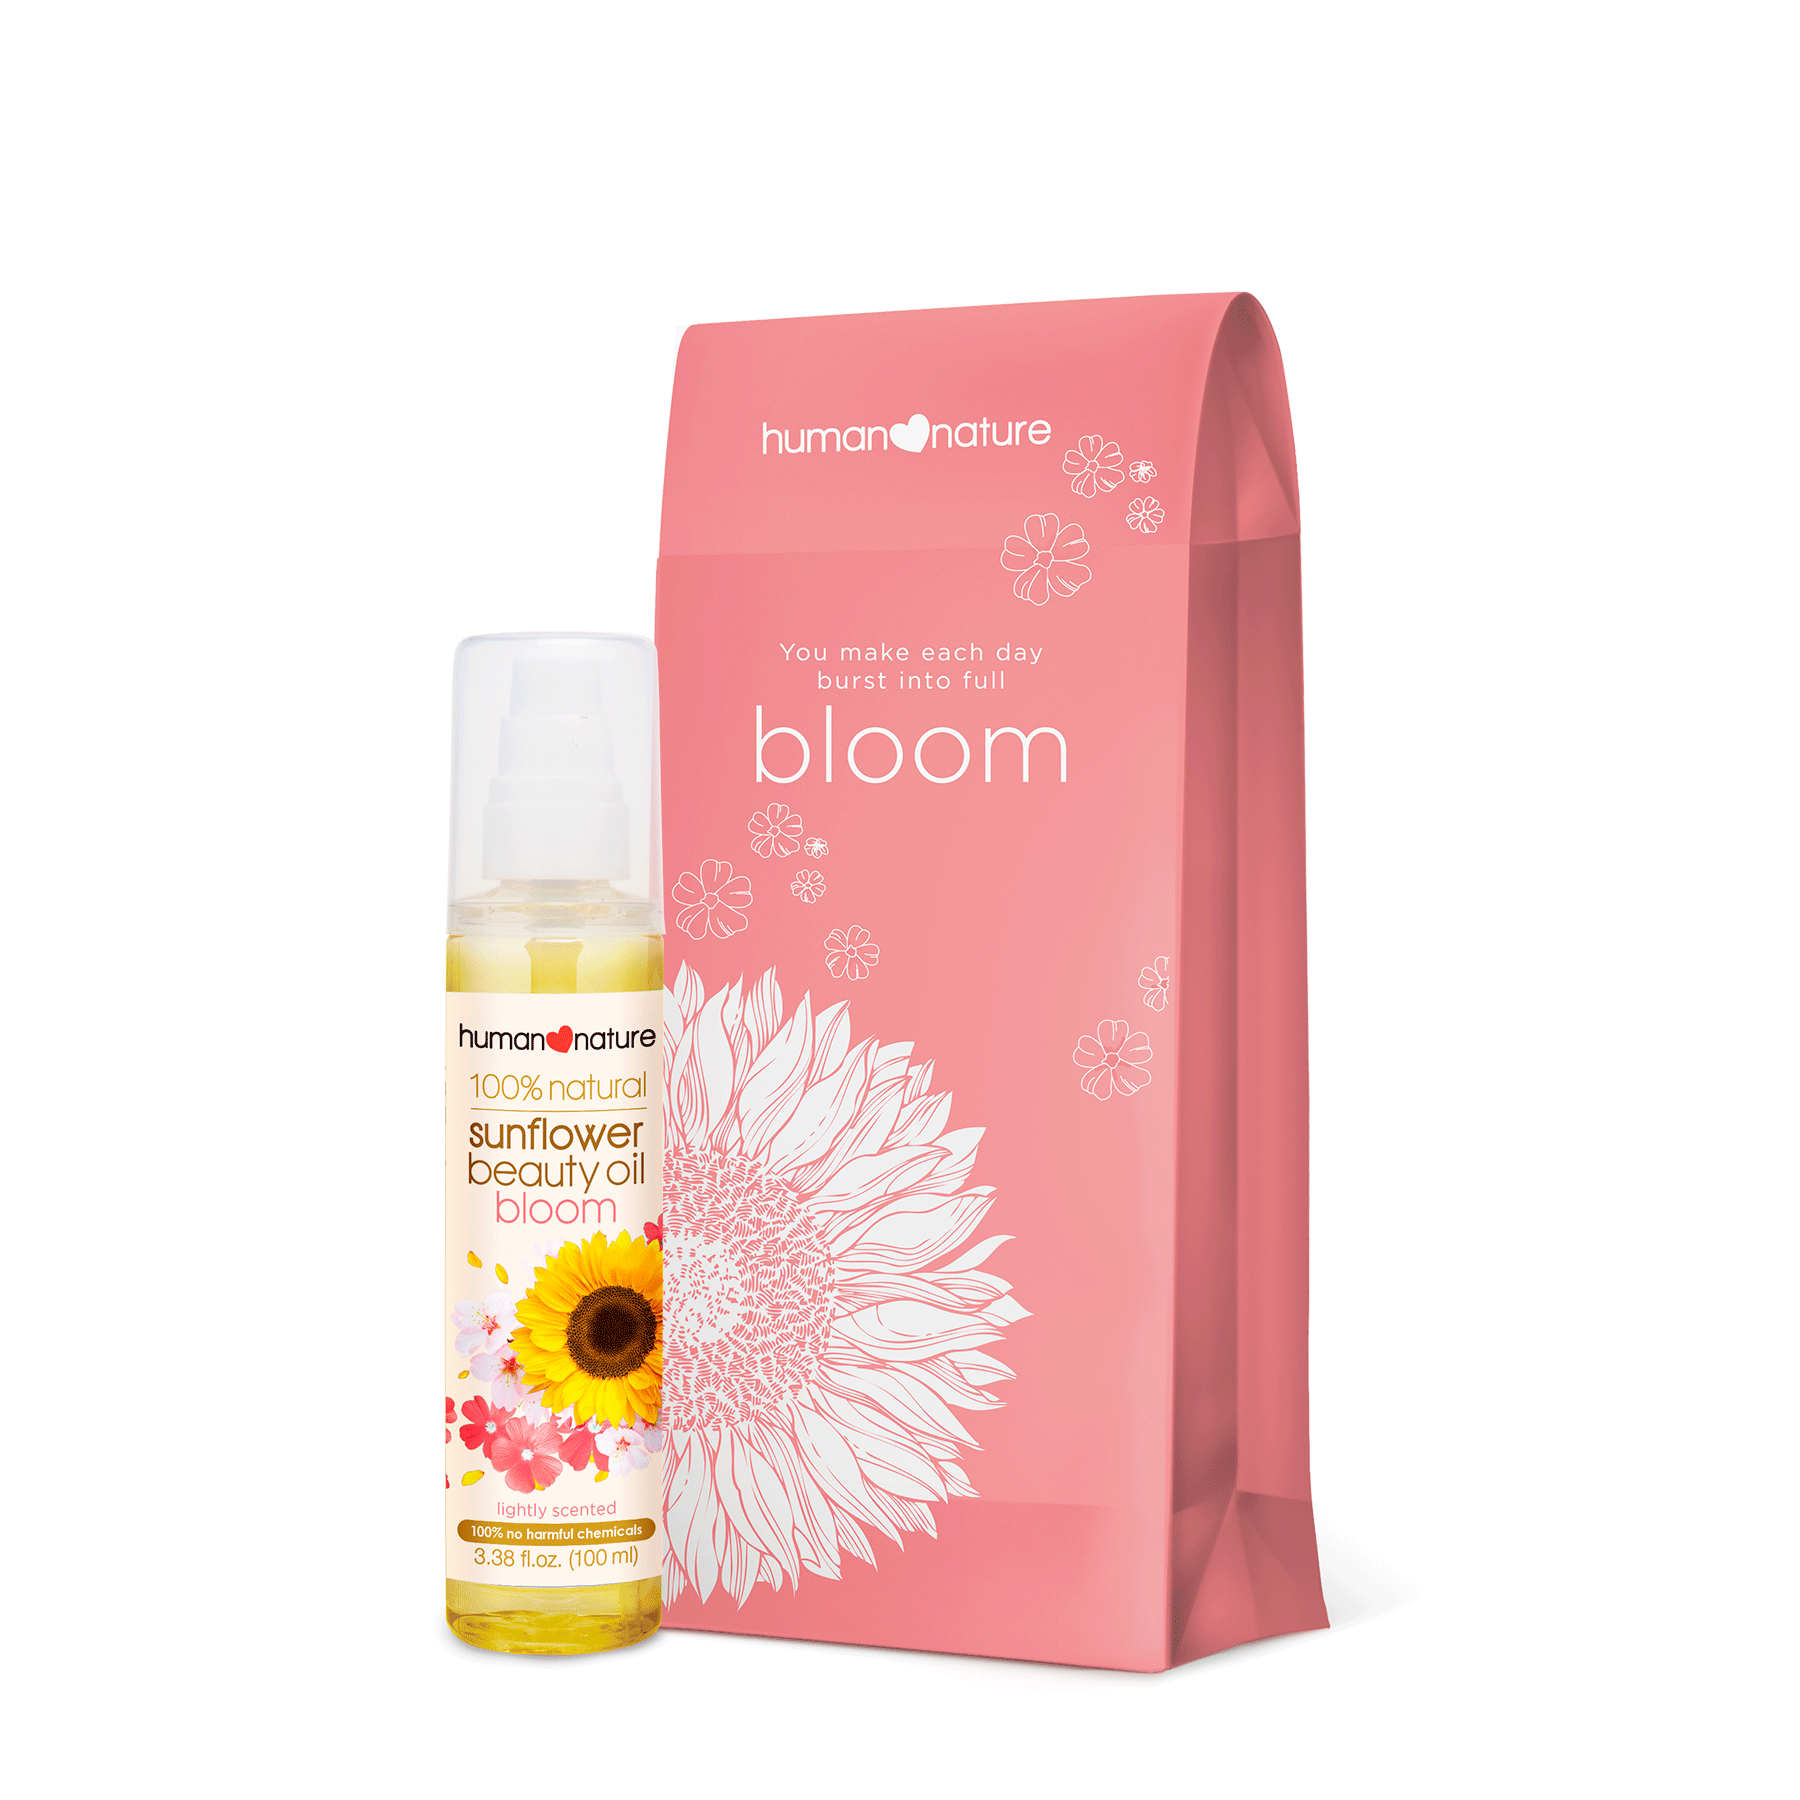 Sunflower Beauty Oil Bloom 100ml with Gift Bag - Top-Season Essentials